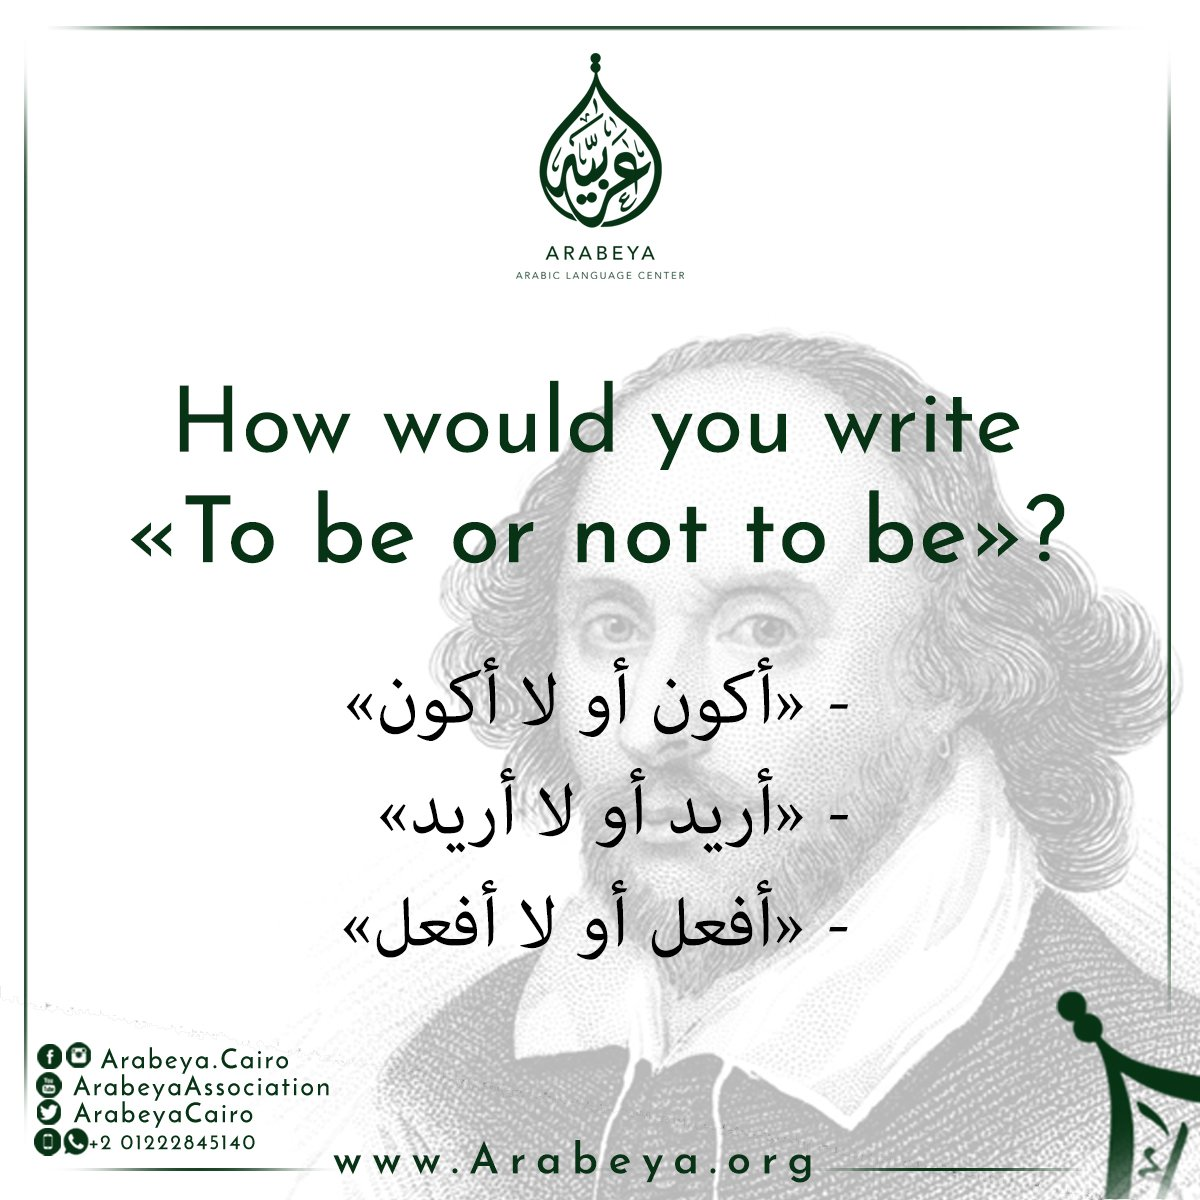 &quot;To be or not to be&quot; - William Shakespeare. Let&#39;s answer this, then!   #LearningIsFun #LearnArabic #Quotes #FamousQuotes #Shakespeare #English #EnglishLanguage #ArabicLanguage #EnglishLiterature #Quiz #ToBeOrNotToBe #ArabicLearning #EnglishQuotes #Literature #ArabicQuotes<br>http://pic.twitter.com/BepSU4fyqJ